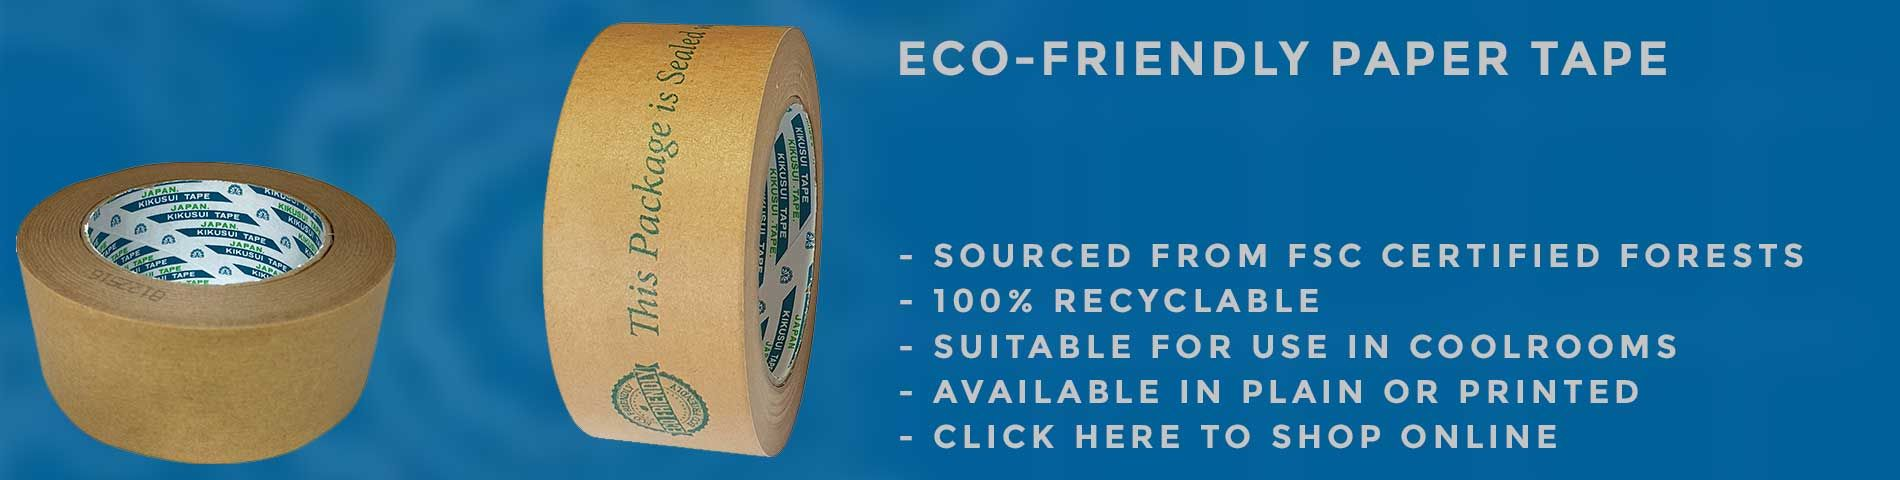 Eco Friendly Packaging - Paper Tape